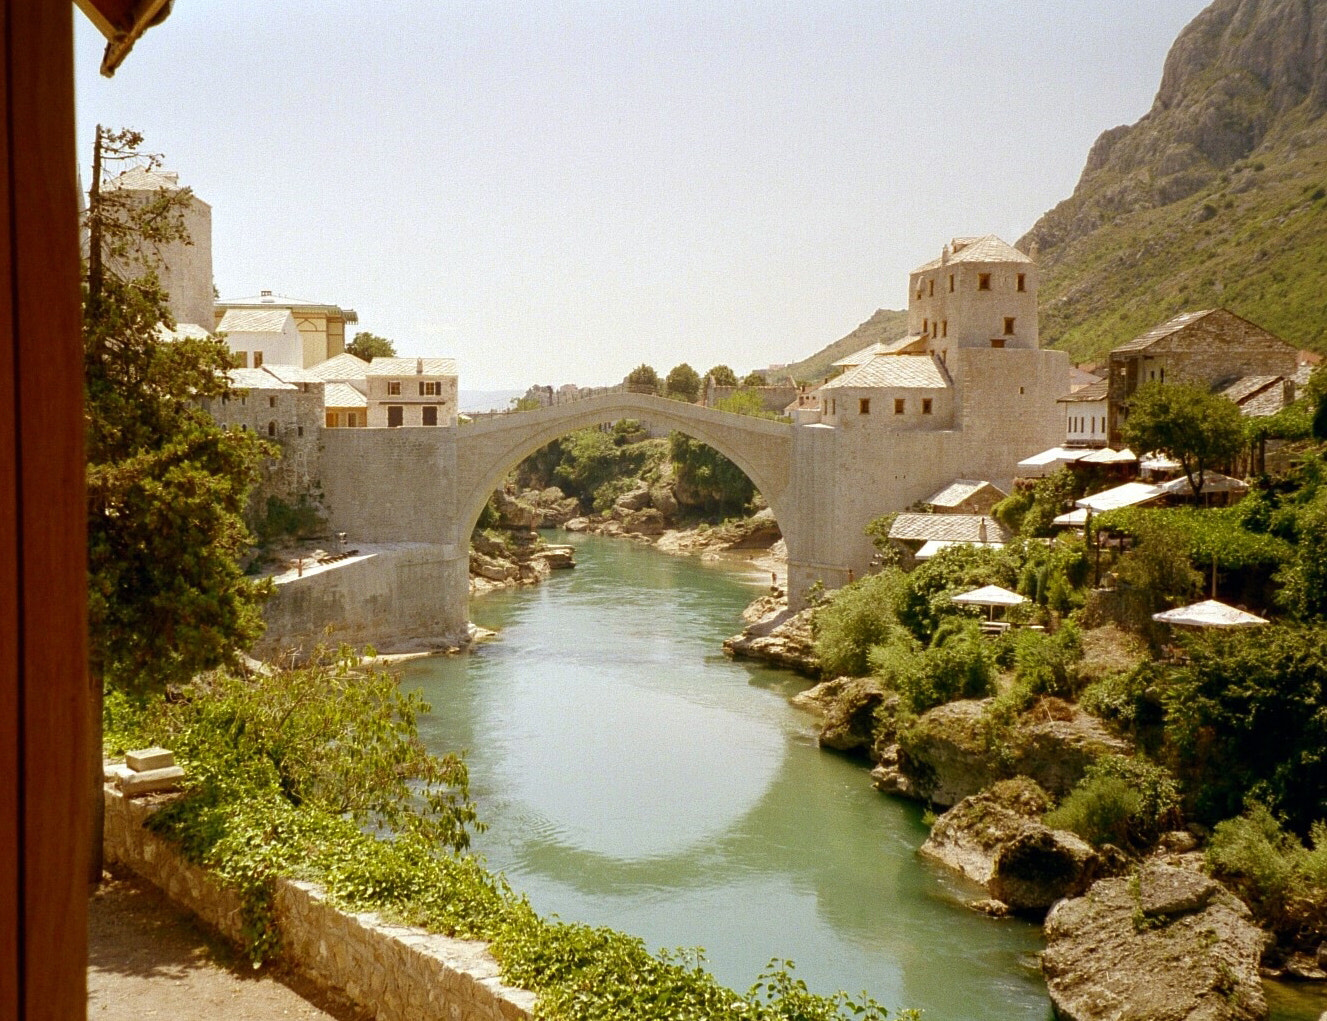 Photograph bridge, Mostar by Werner Monatsspruch on 500px